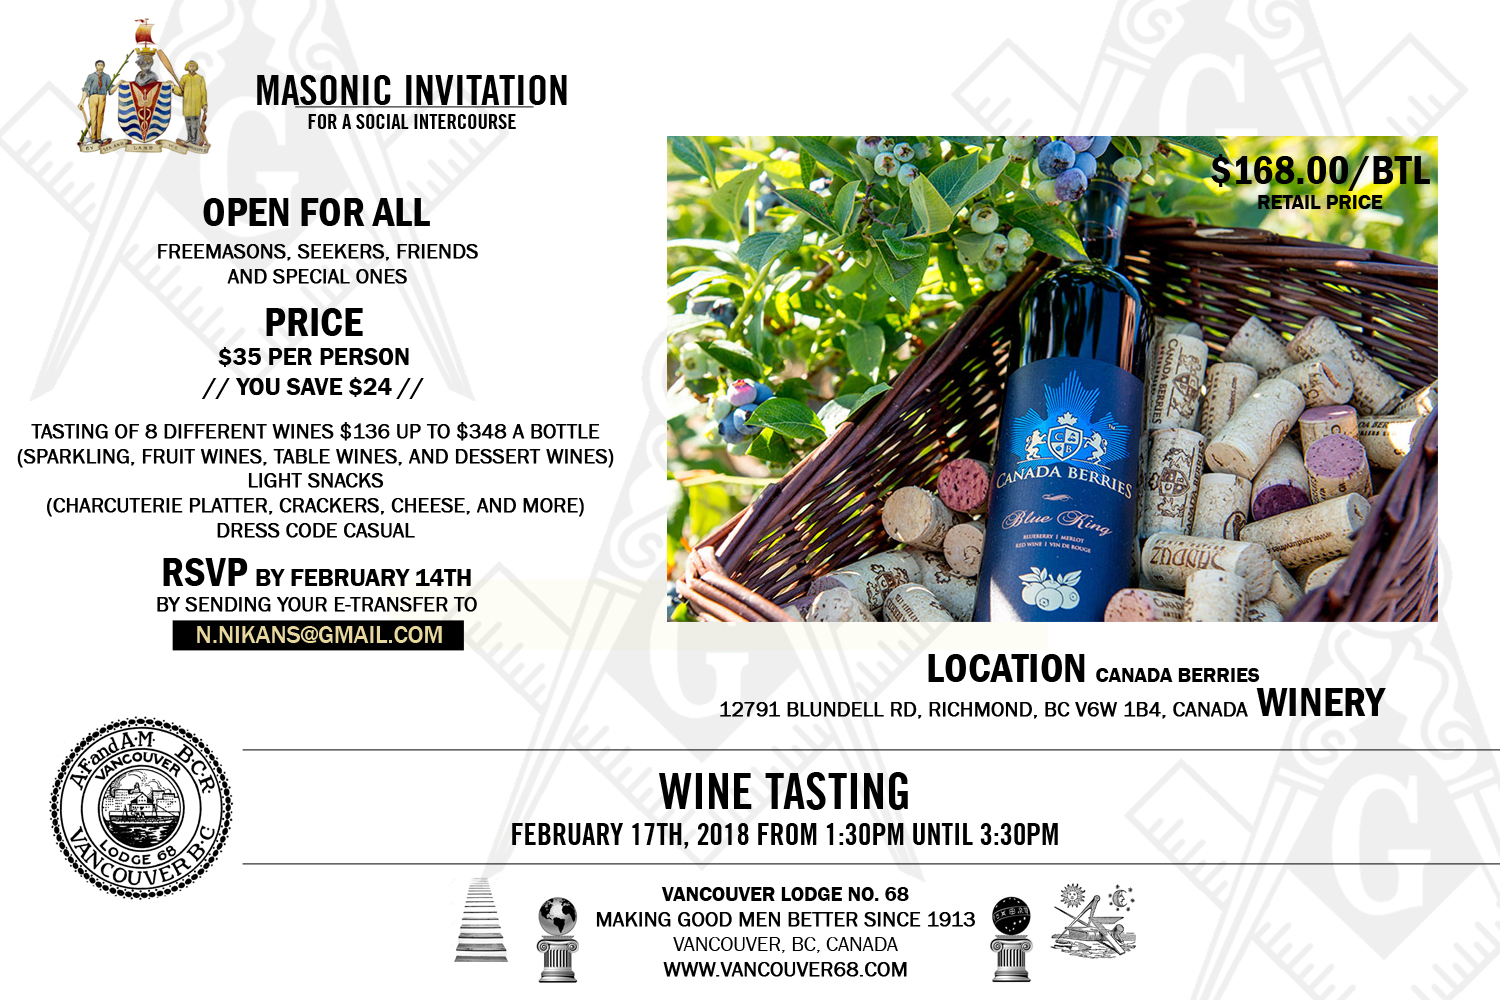 Masonic Wine Tasting Event at Canada Berries Winery by Vancouver Lodge No 68